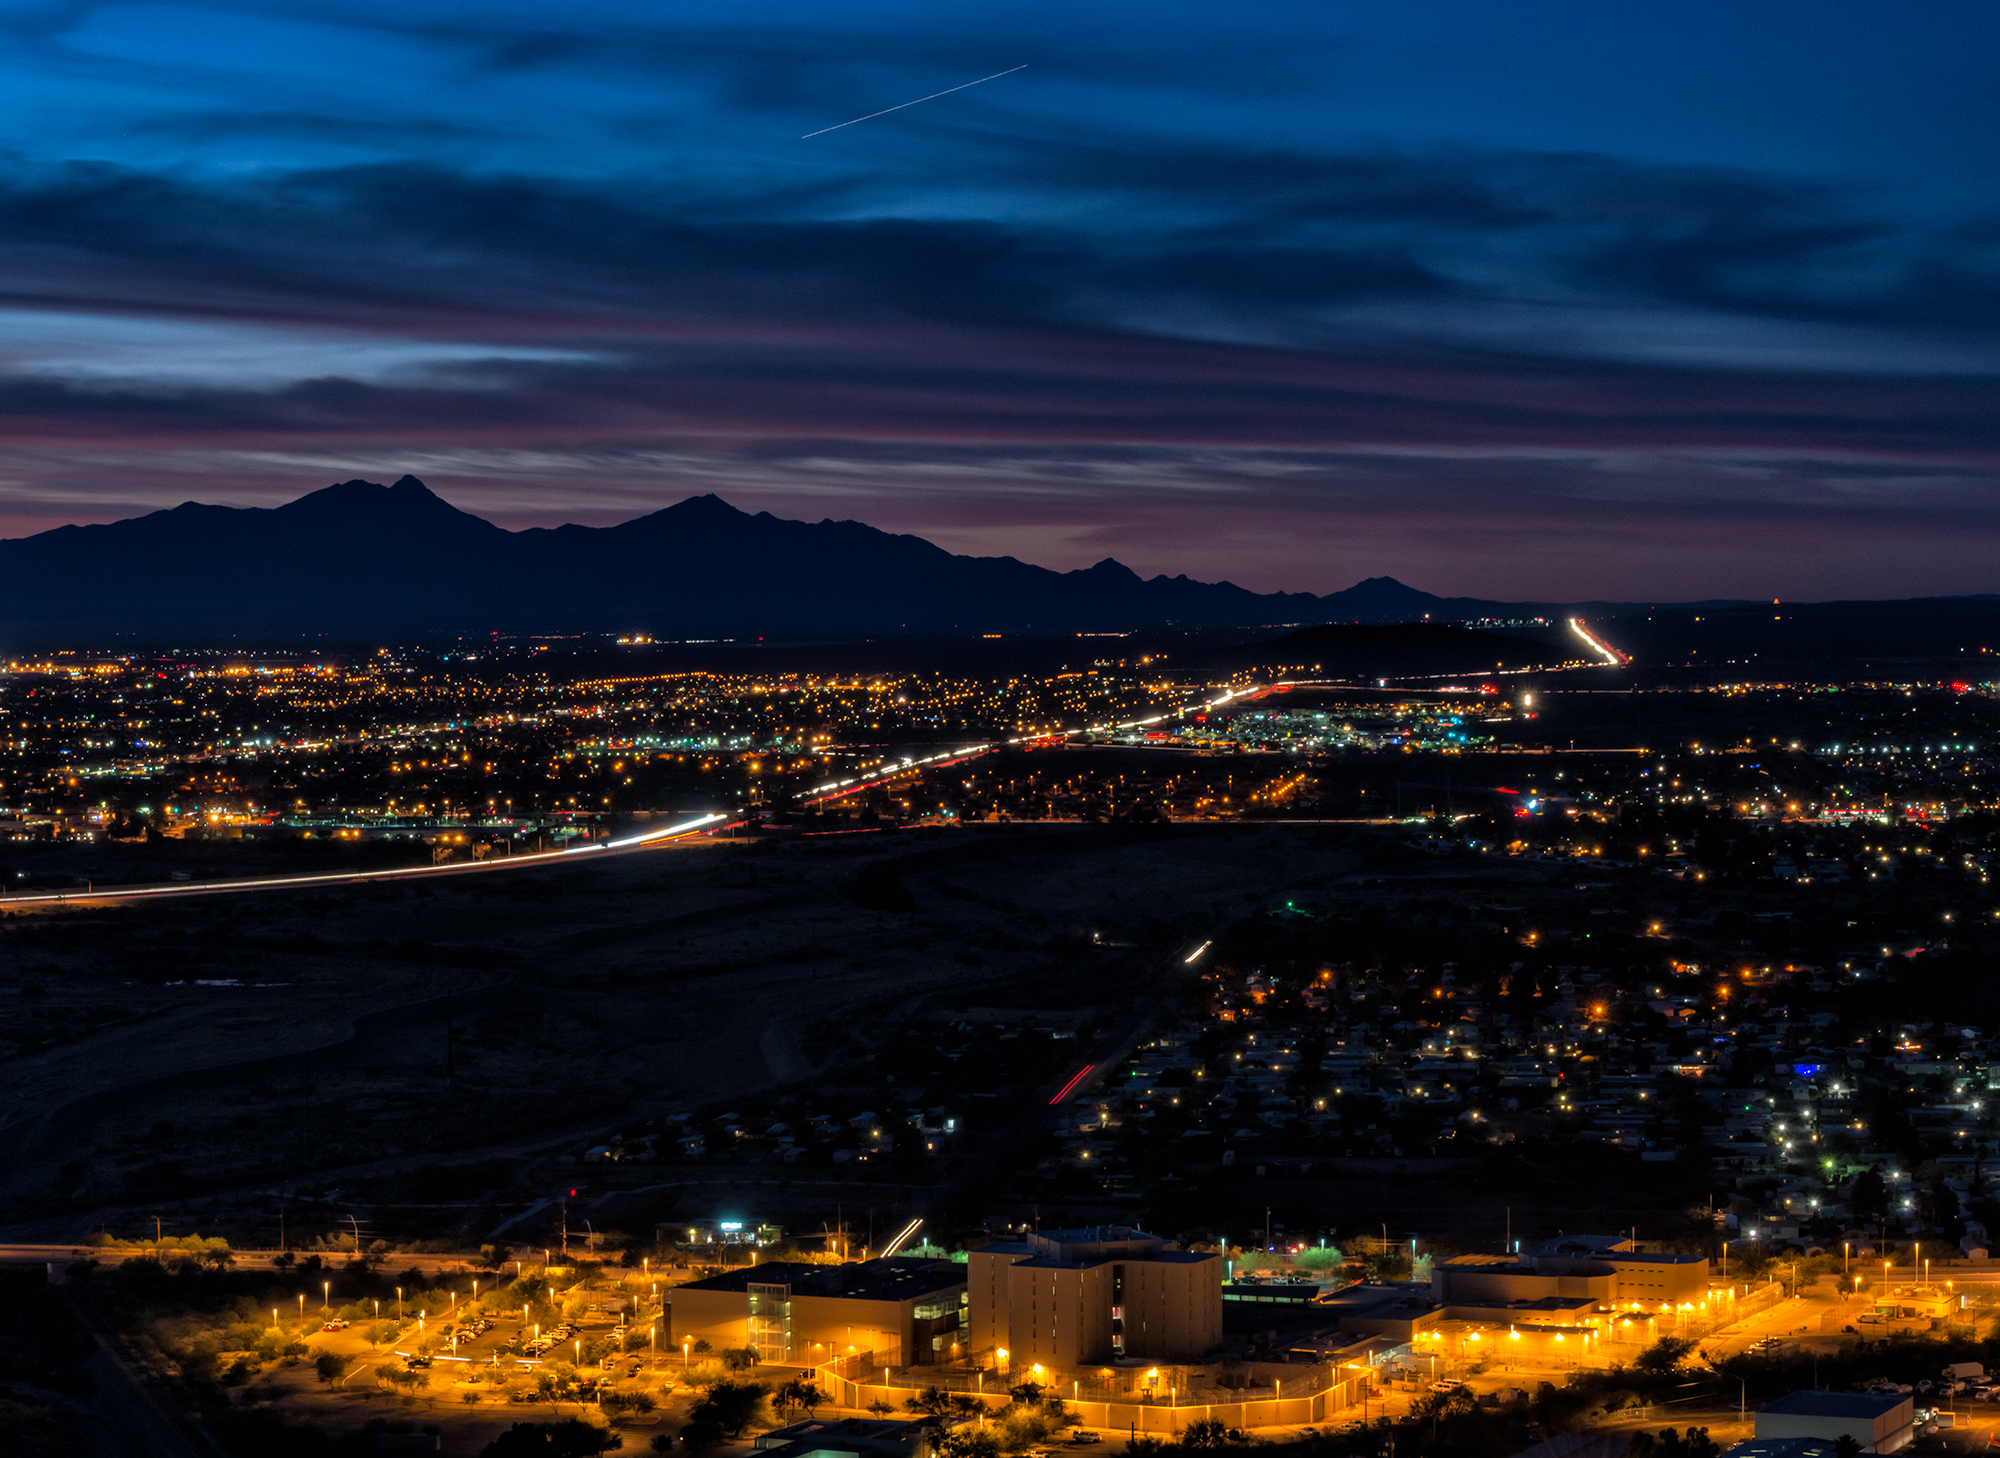 First Light Over the City. Tucson, Arizona, 2015 (Mt. Wrightson and the Santa Rita Range is on the horizon.)